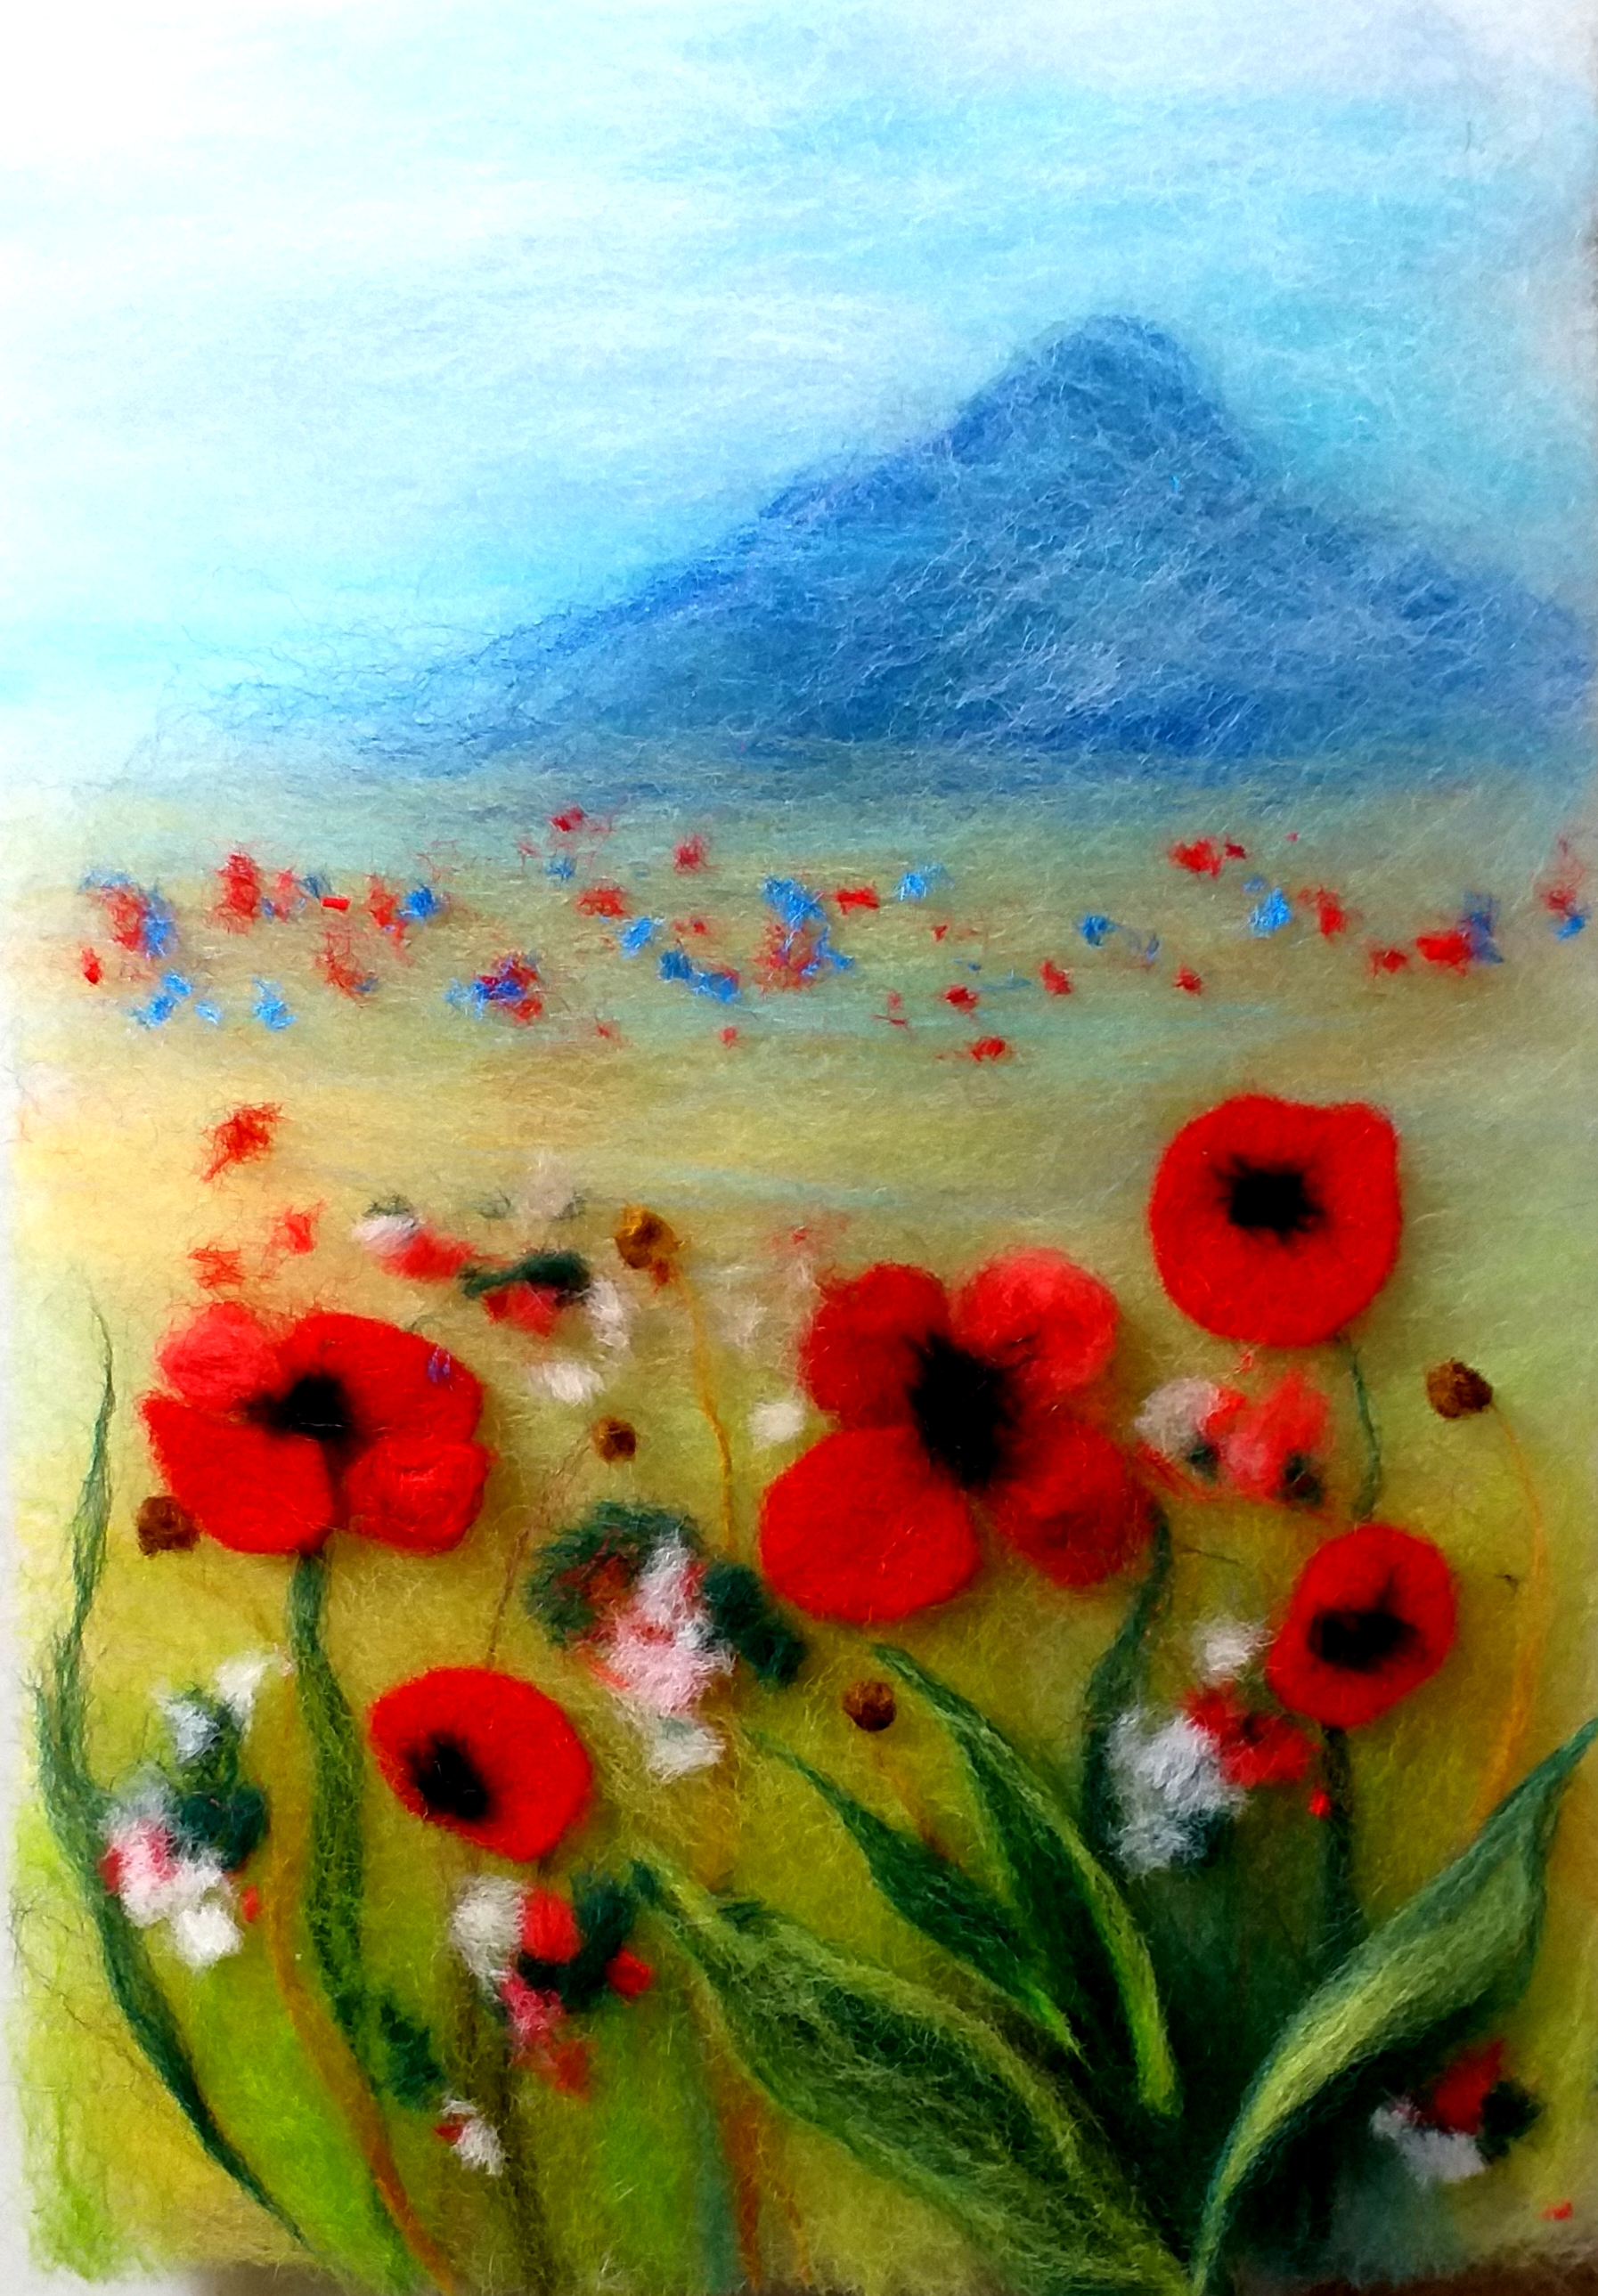 'Field with red poppies' wool painting online course